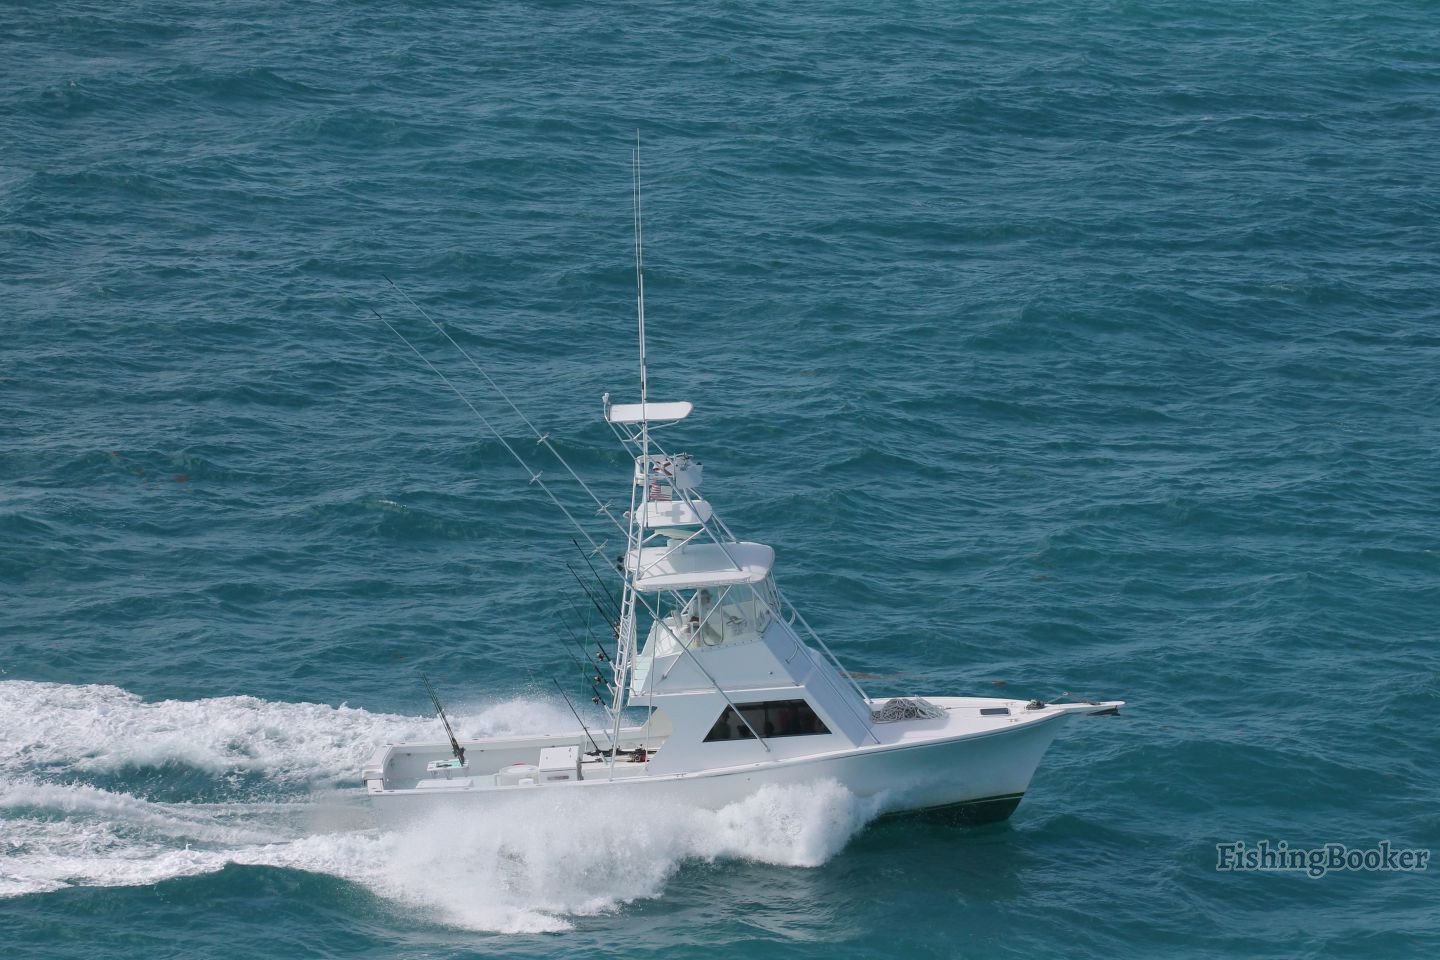 Southpaw fishing charters key west florida for Key west fishing charters